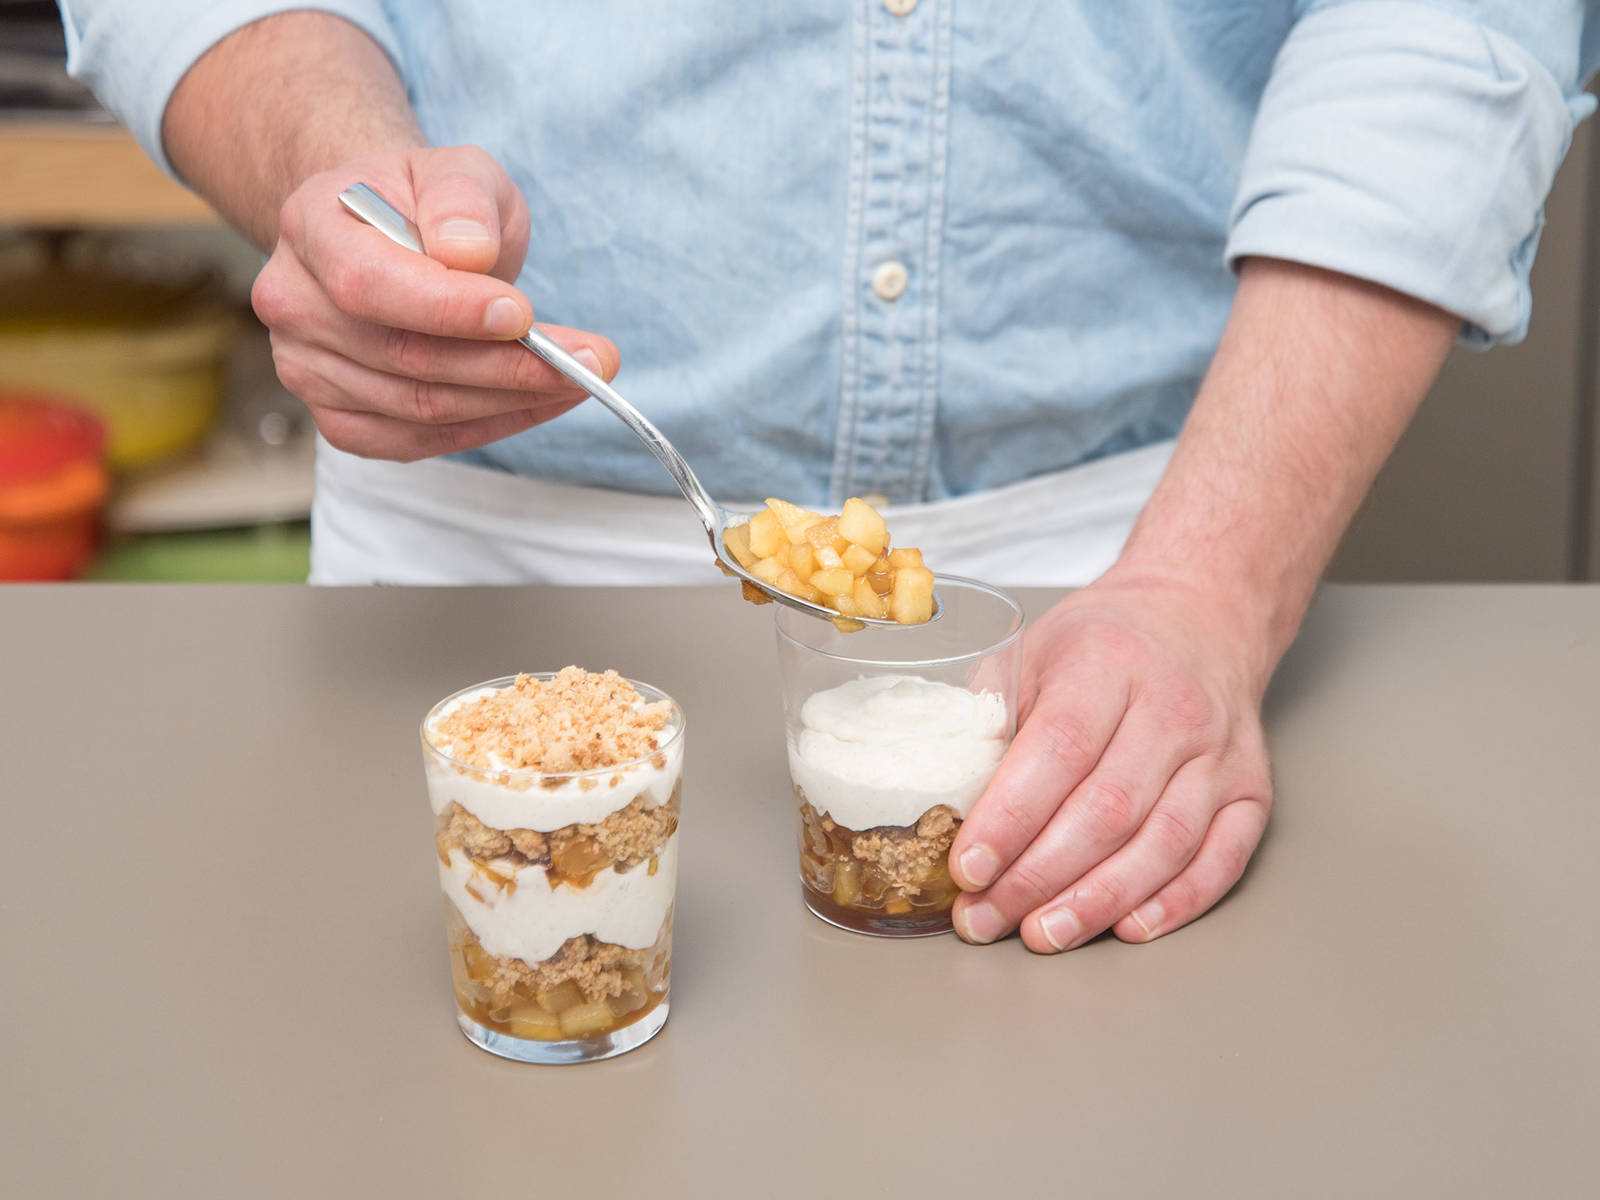 Layer dessert in serving glasses. Start with a layer of apple mixture, then crumbles, and finally whipped cream. Repeat pattern a second time, then sprinkle more crumbles and apples on top to finish. Refrigerate until serving. Enjoy!